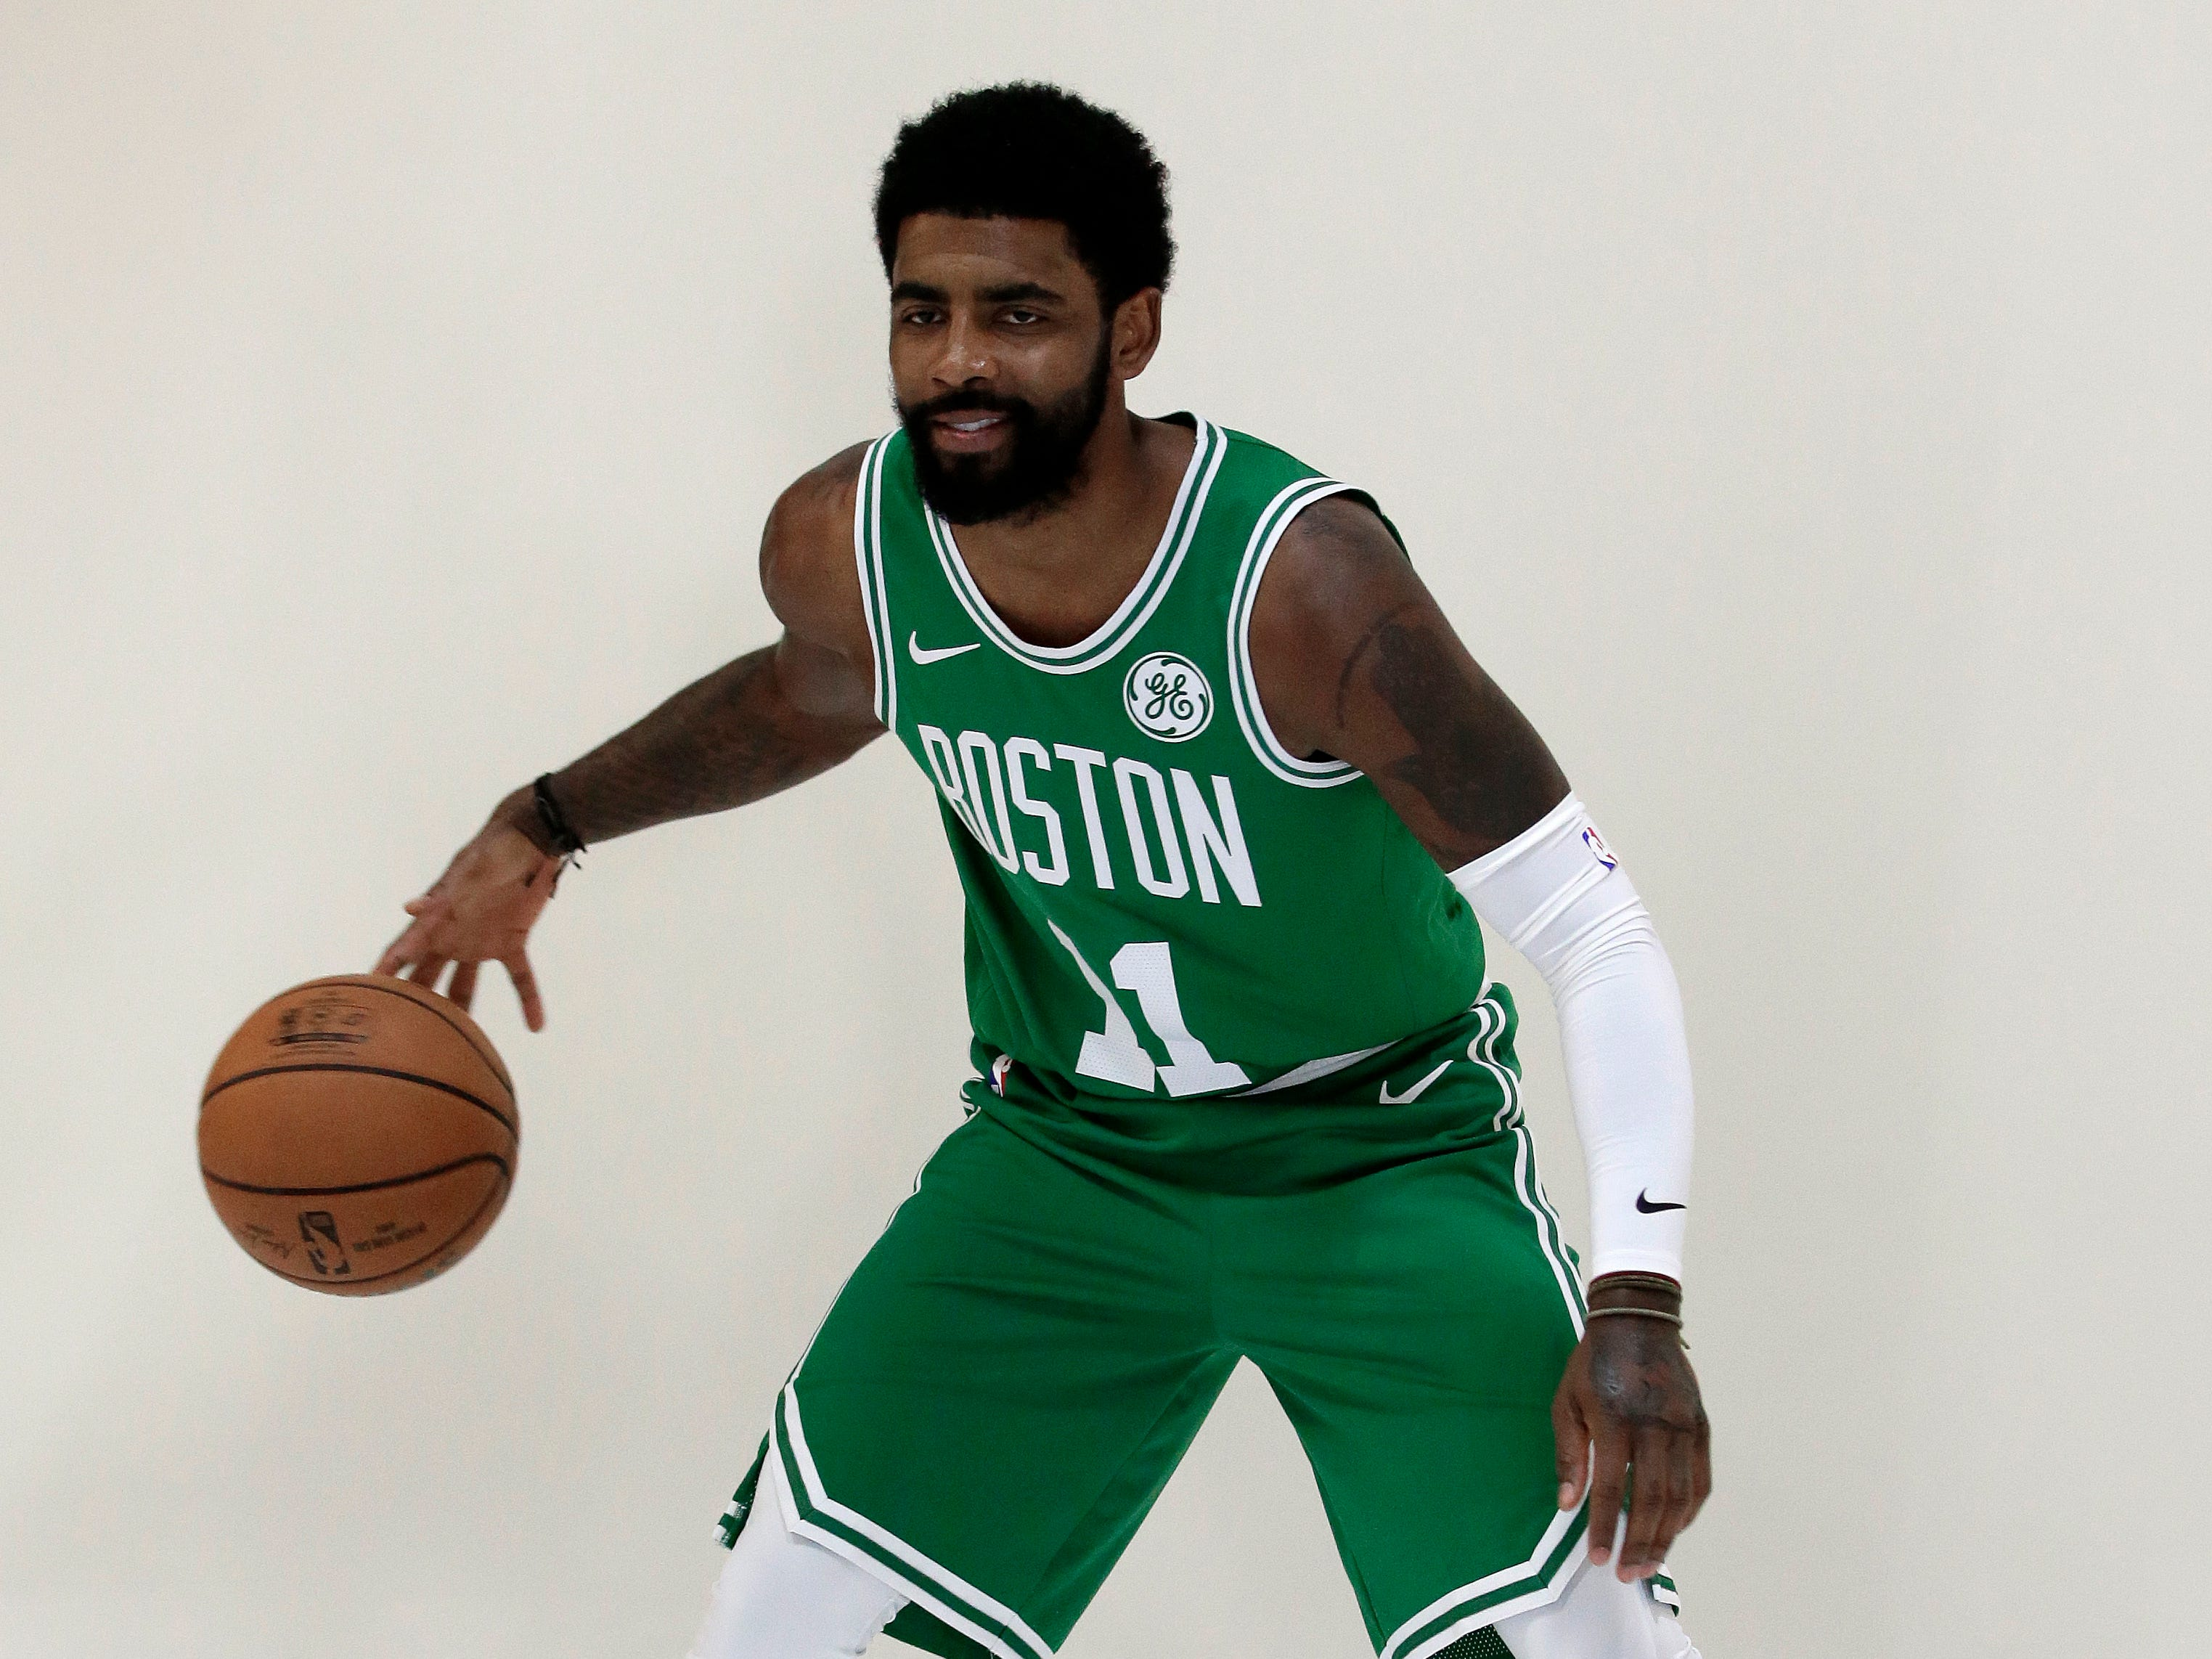 Boston Celtics guard Kyrie Irving dribbles the ball during a photo shoot.